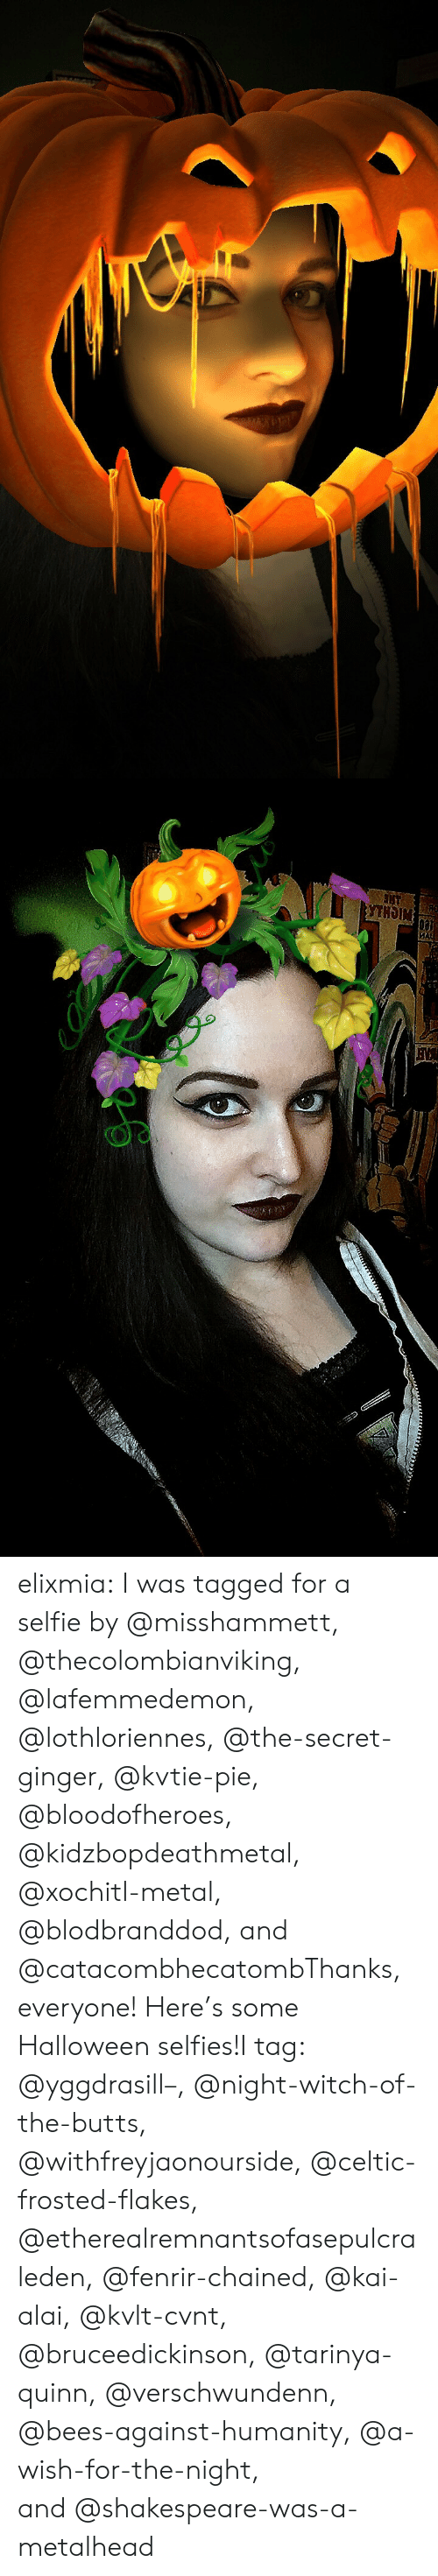 Celtic, Halloween, and Selfie: elixmia:  I was tagged for a selfie by @misshammett, @thecolombianviking, @lafemmedemon, @lothloriennes, @the-secret-ginger, @kvtie-pie, @bloodofheroes, @kidzbopdeathmetal, @xochitl-metal, @blodbranddod, and @catacombhecatombThanks, everyone! Here's some Halloween selfies!I tag: @yggdrasill–, @night-witch-of-the-butts, @withfreyjaonourside, @celtic-frosted-flakes, @etherealremnantsofasepulcraleden, @fenrir-chained, @kai-alai, @kvlt-cvnt, @bruceedickinson, @tarinya-quinn, @verschwundenn, @bees-against-humanity, @a-wish-for-the-night, and@shakespeare-was-a-metalhead